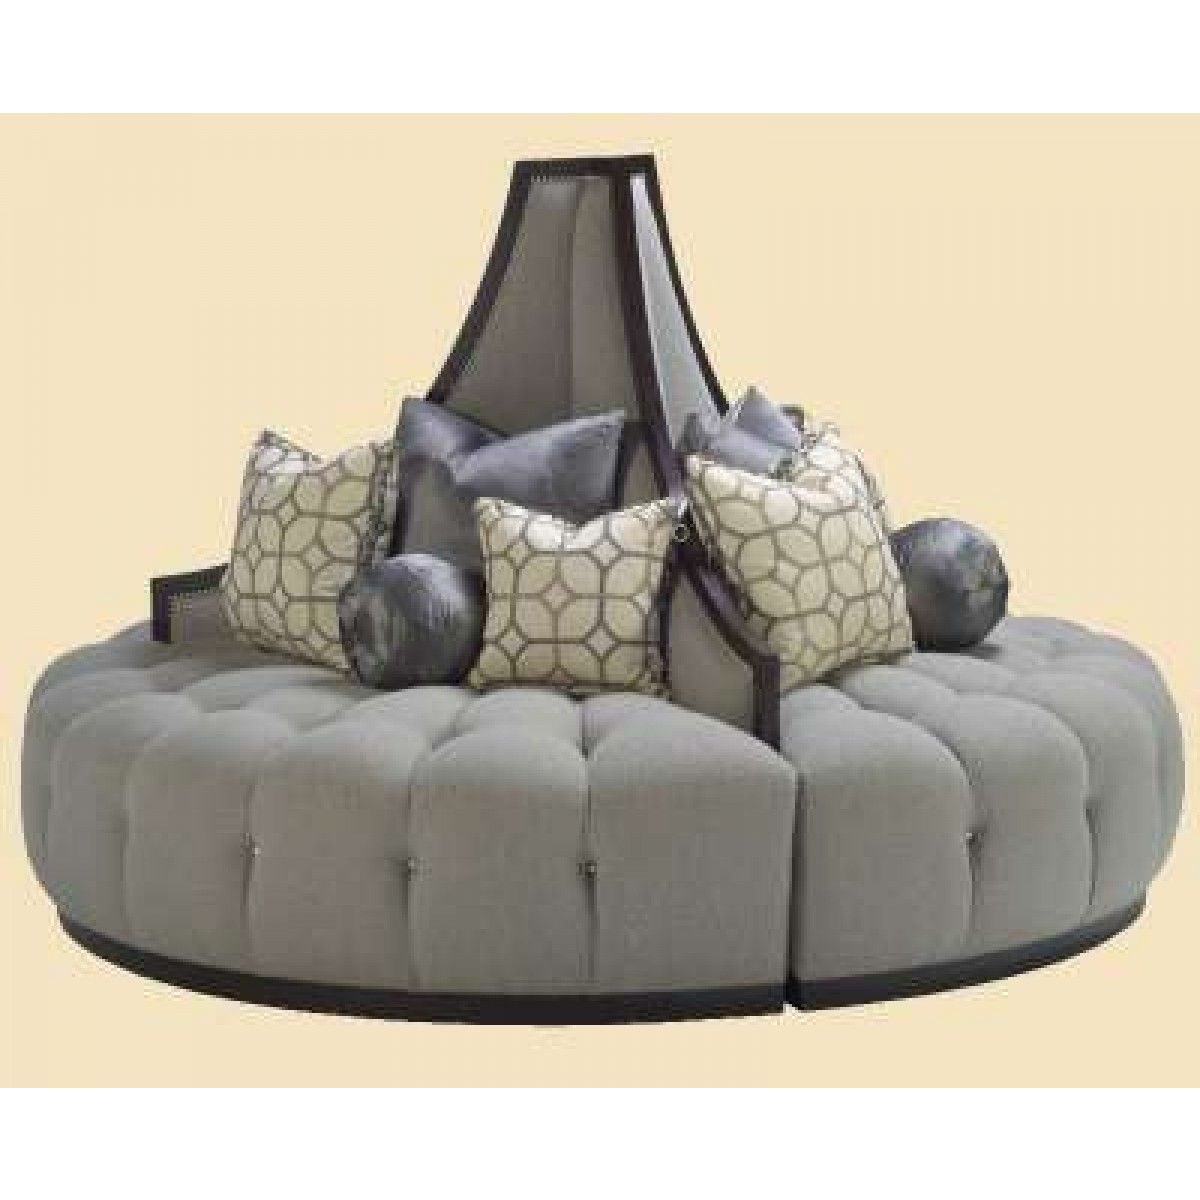 finest sofas and loveseats model-Awesome sofas and Loveseats Design